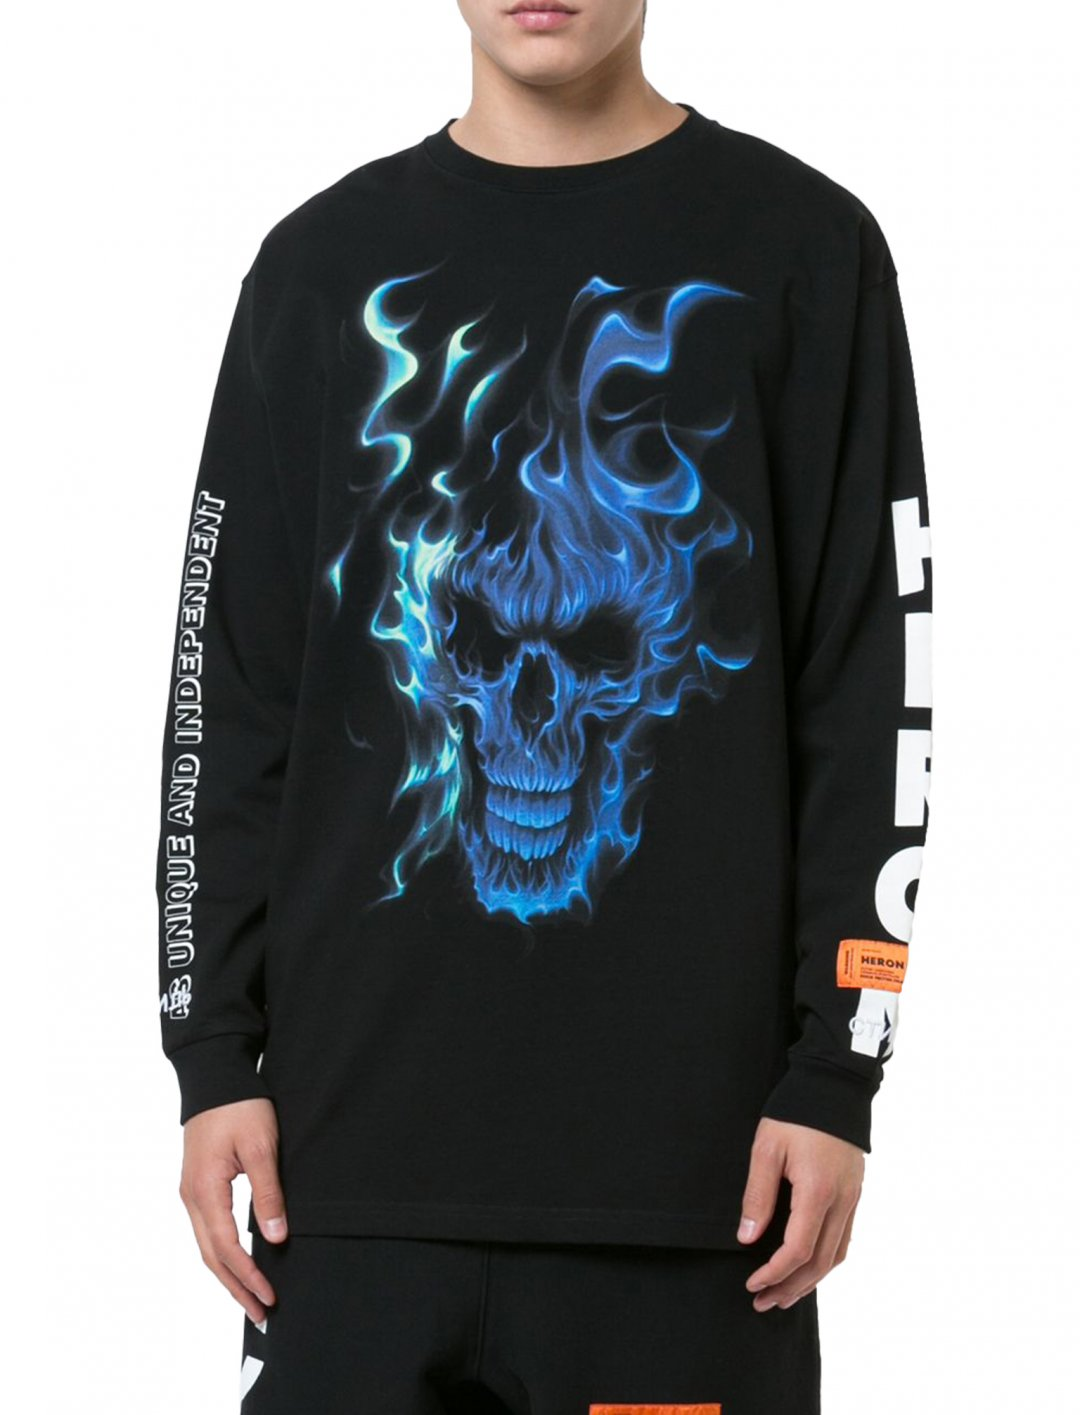 "Skull Print Sweatshirt {""id"":5,""product_section_id"":1,""name"":""Clothing"",""order"":5} Heron Preston"